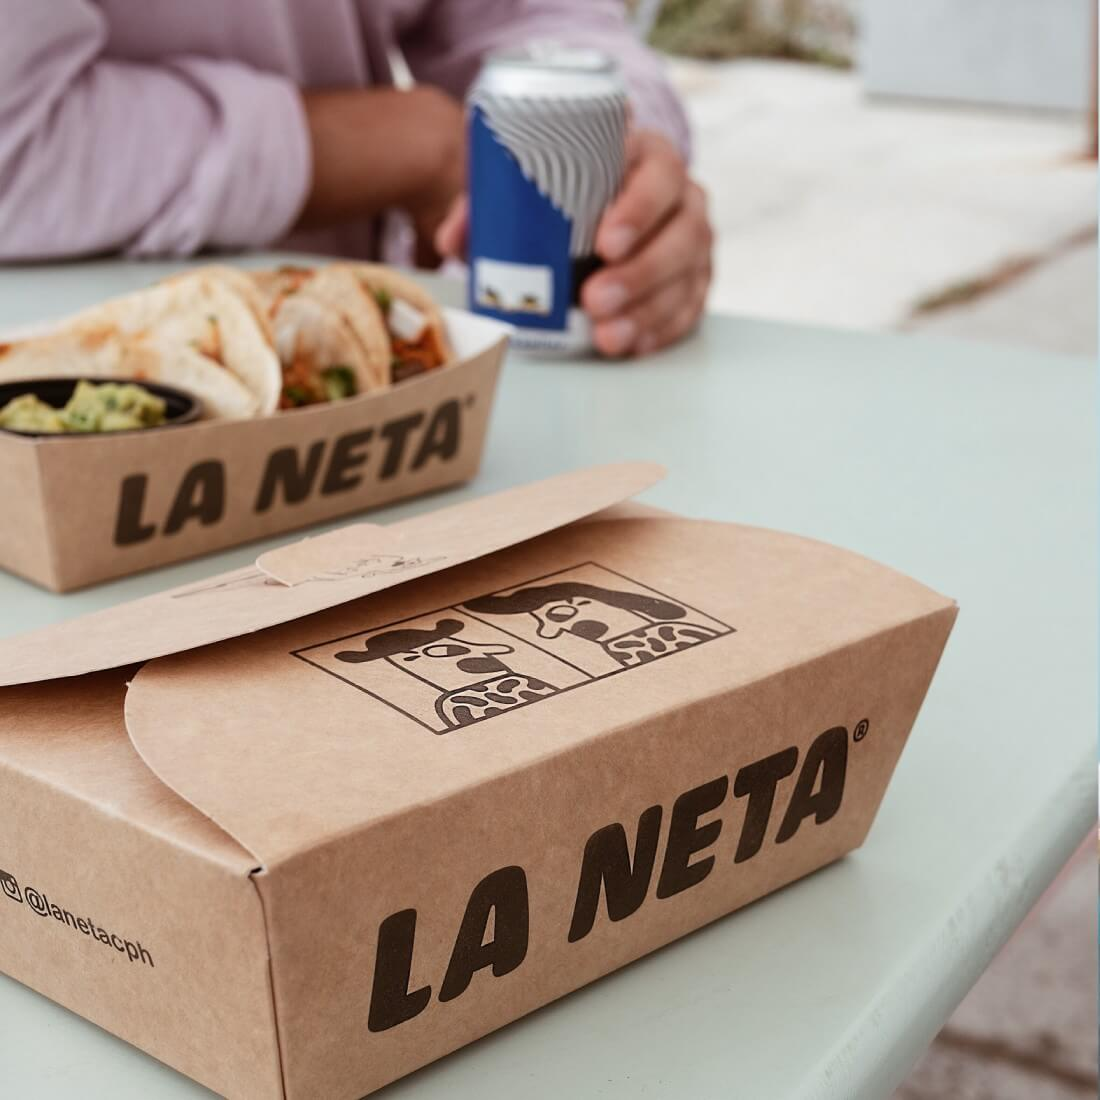 Paper boxes for the Mexican restaurant La Neta- belonging to the global brand Mikkeller, draw attention with their characteristic prints.